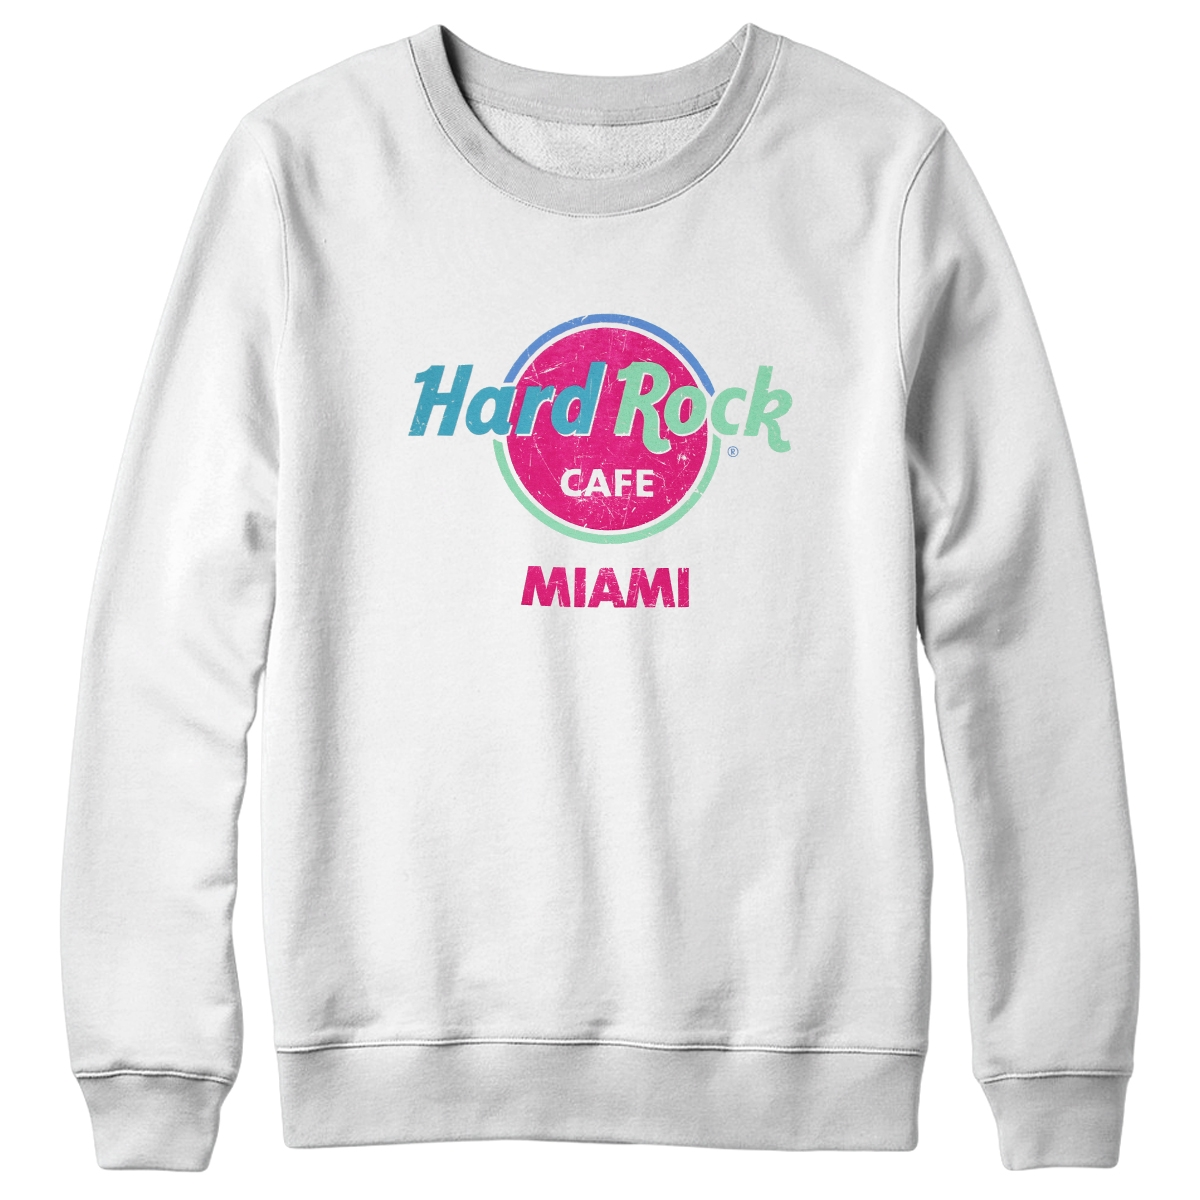 Throwback Logo Sweatshirt Miami 0